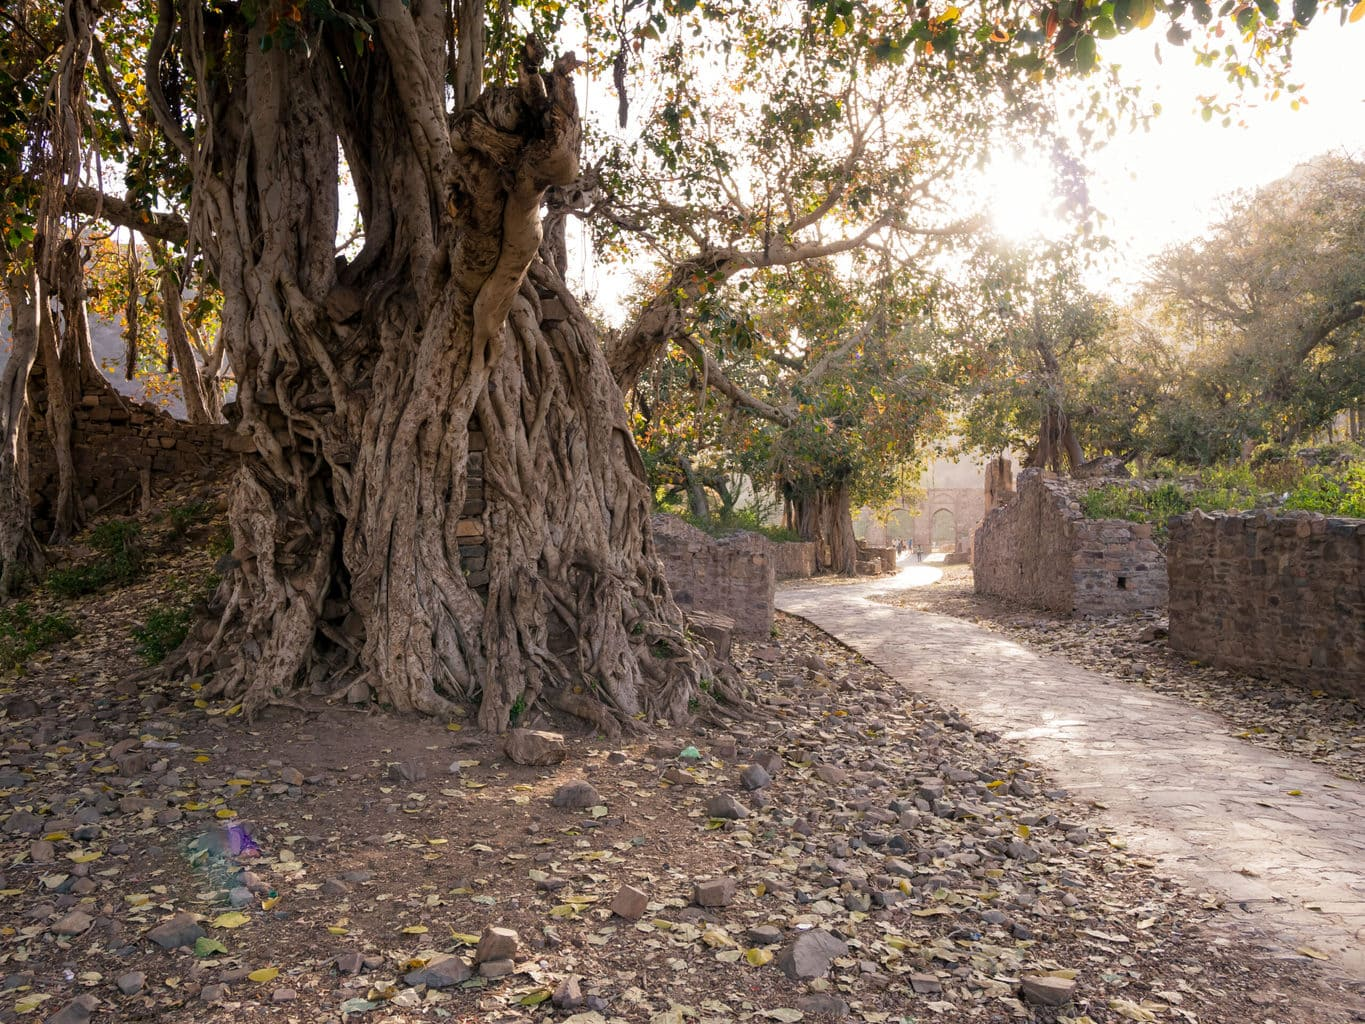 Ancient trees at Bhangarh Fort